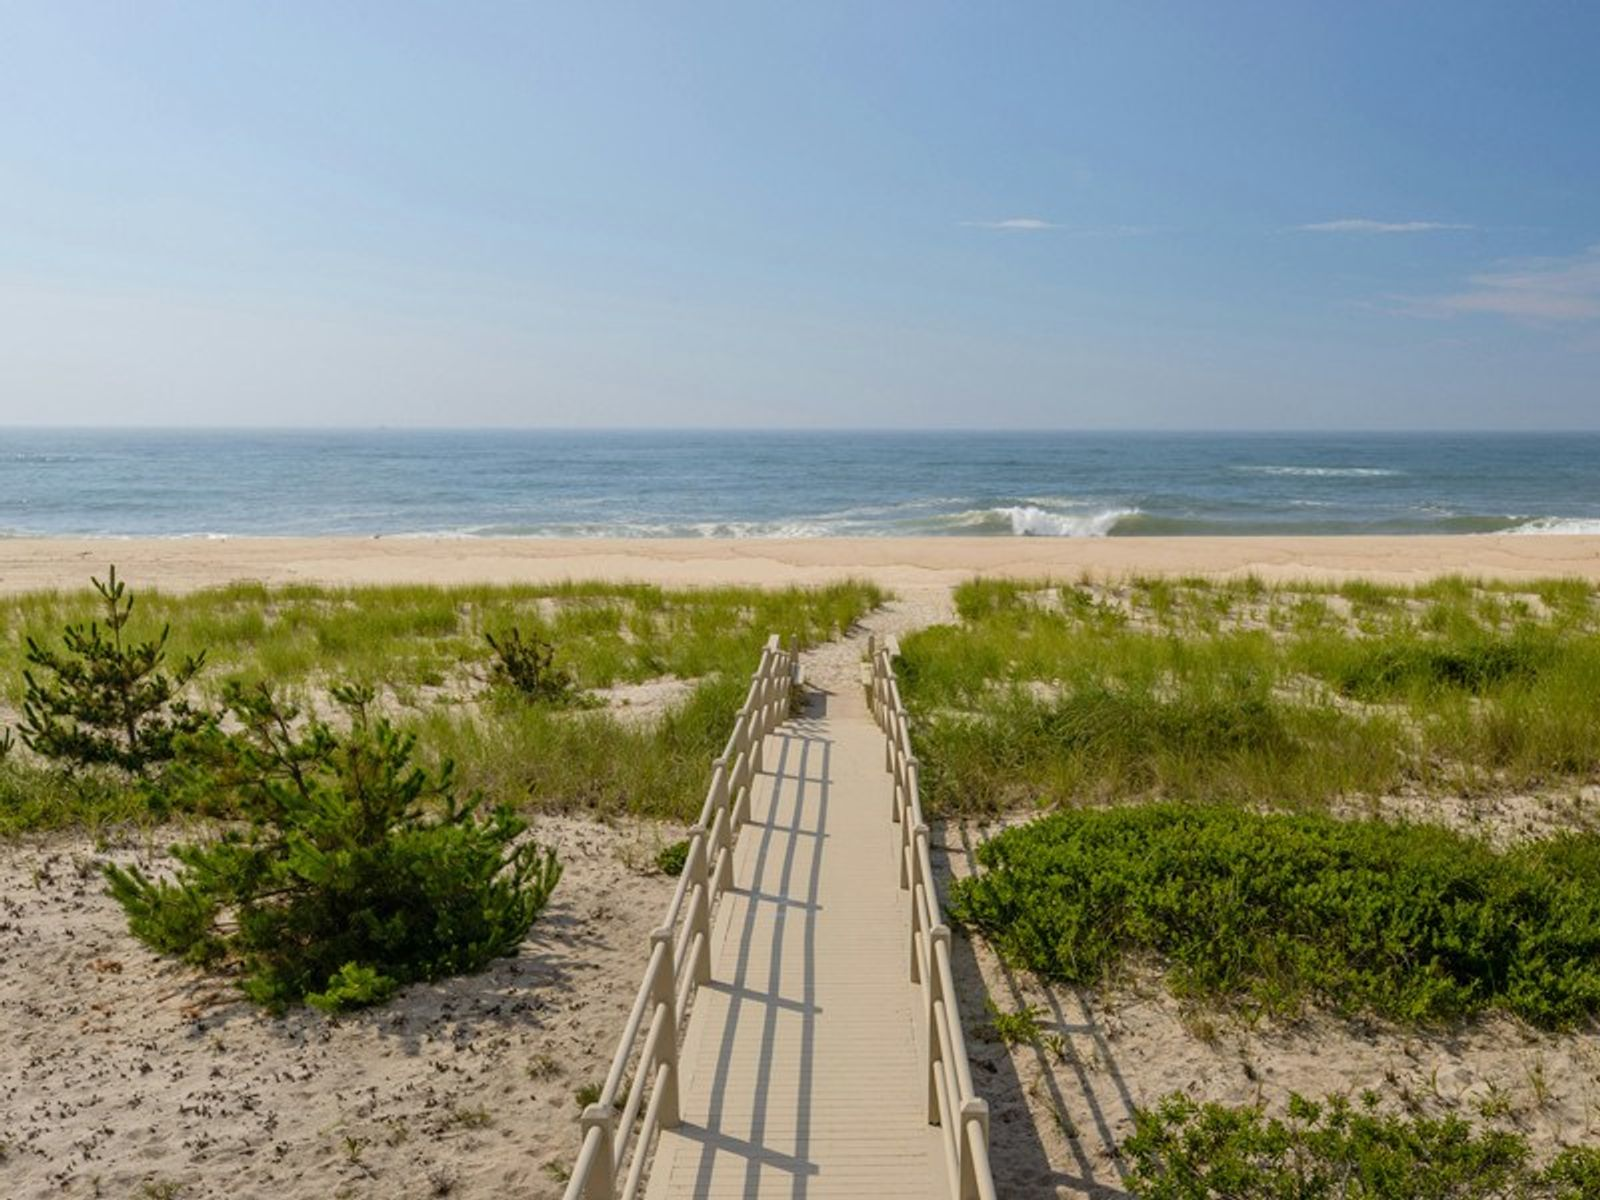 Meadow Lane Oceanfront with Bay View, Southampton NY Single Family Home - Hamptons Real Estate